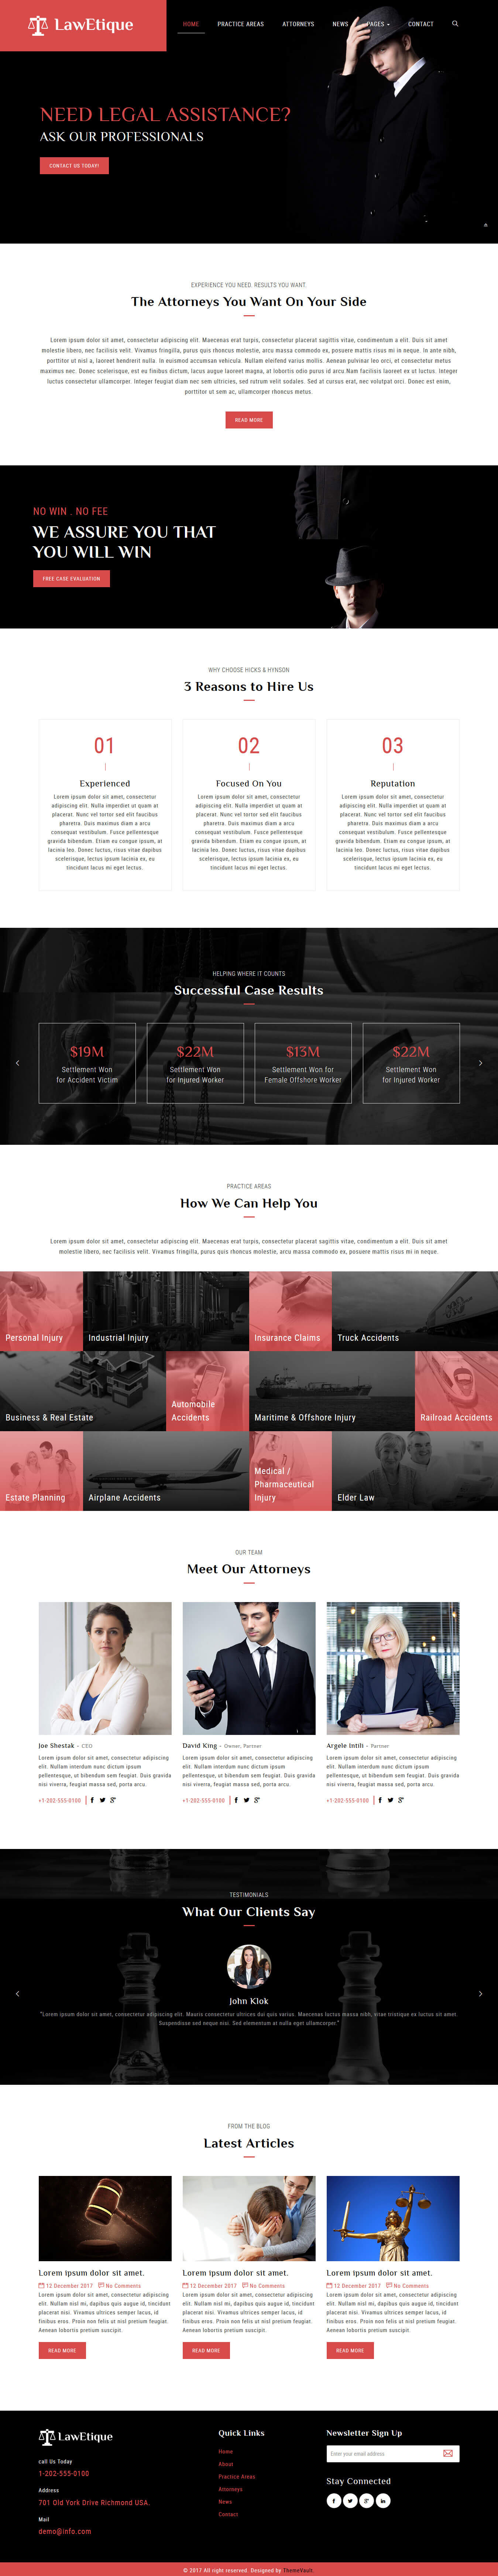 Lawetique - Best Lawyer Website Design Template Free Download